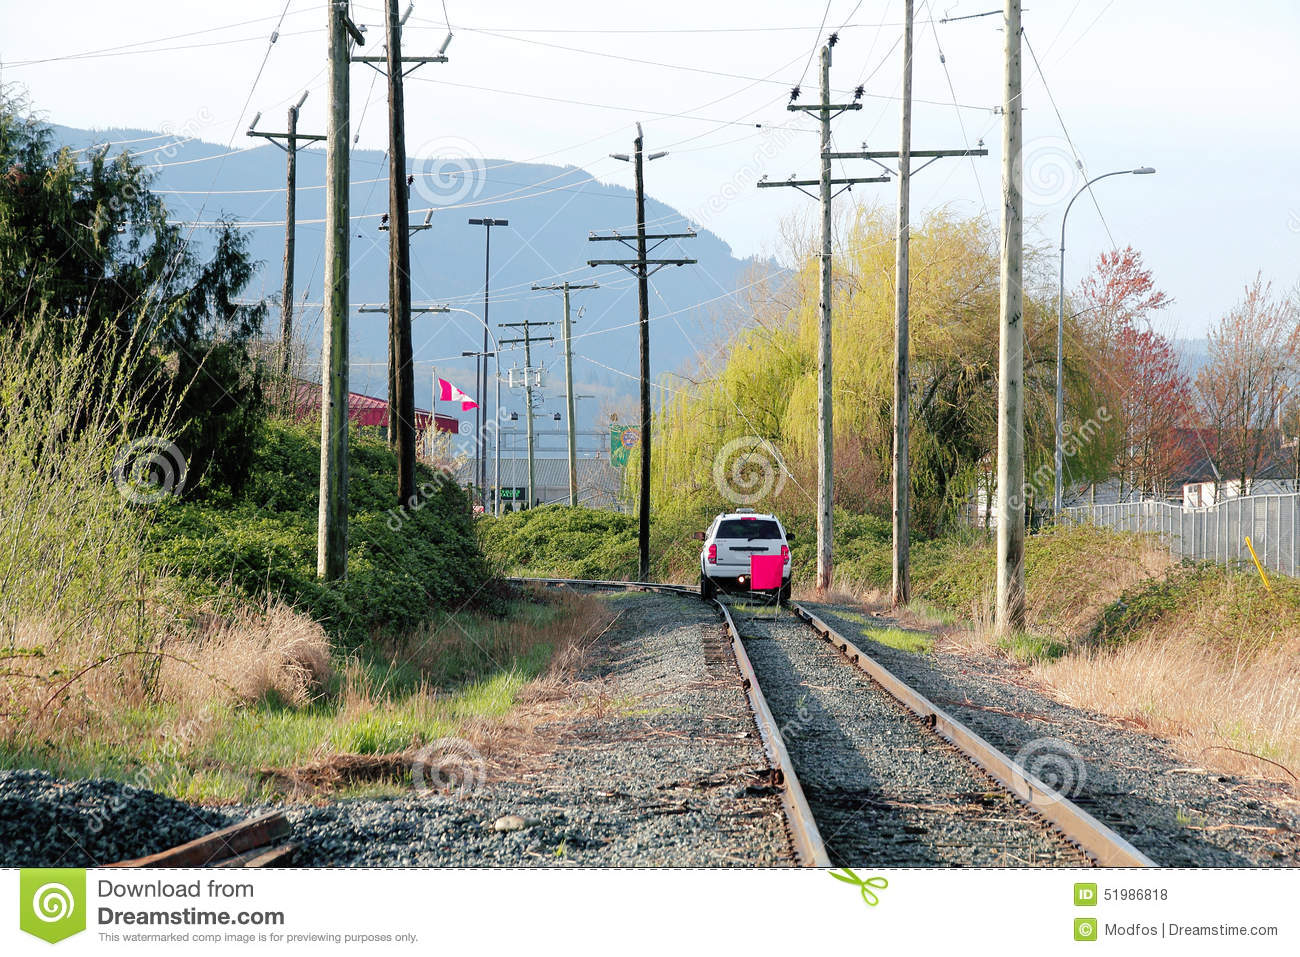 Rail Vehicle For Track Inspection Stock Photo - Image of